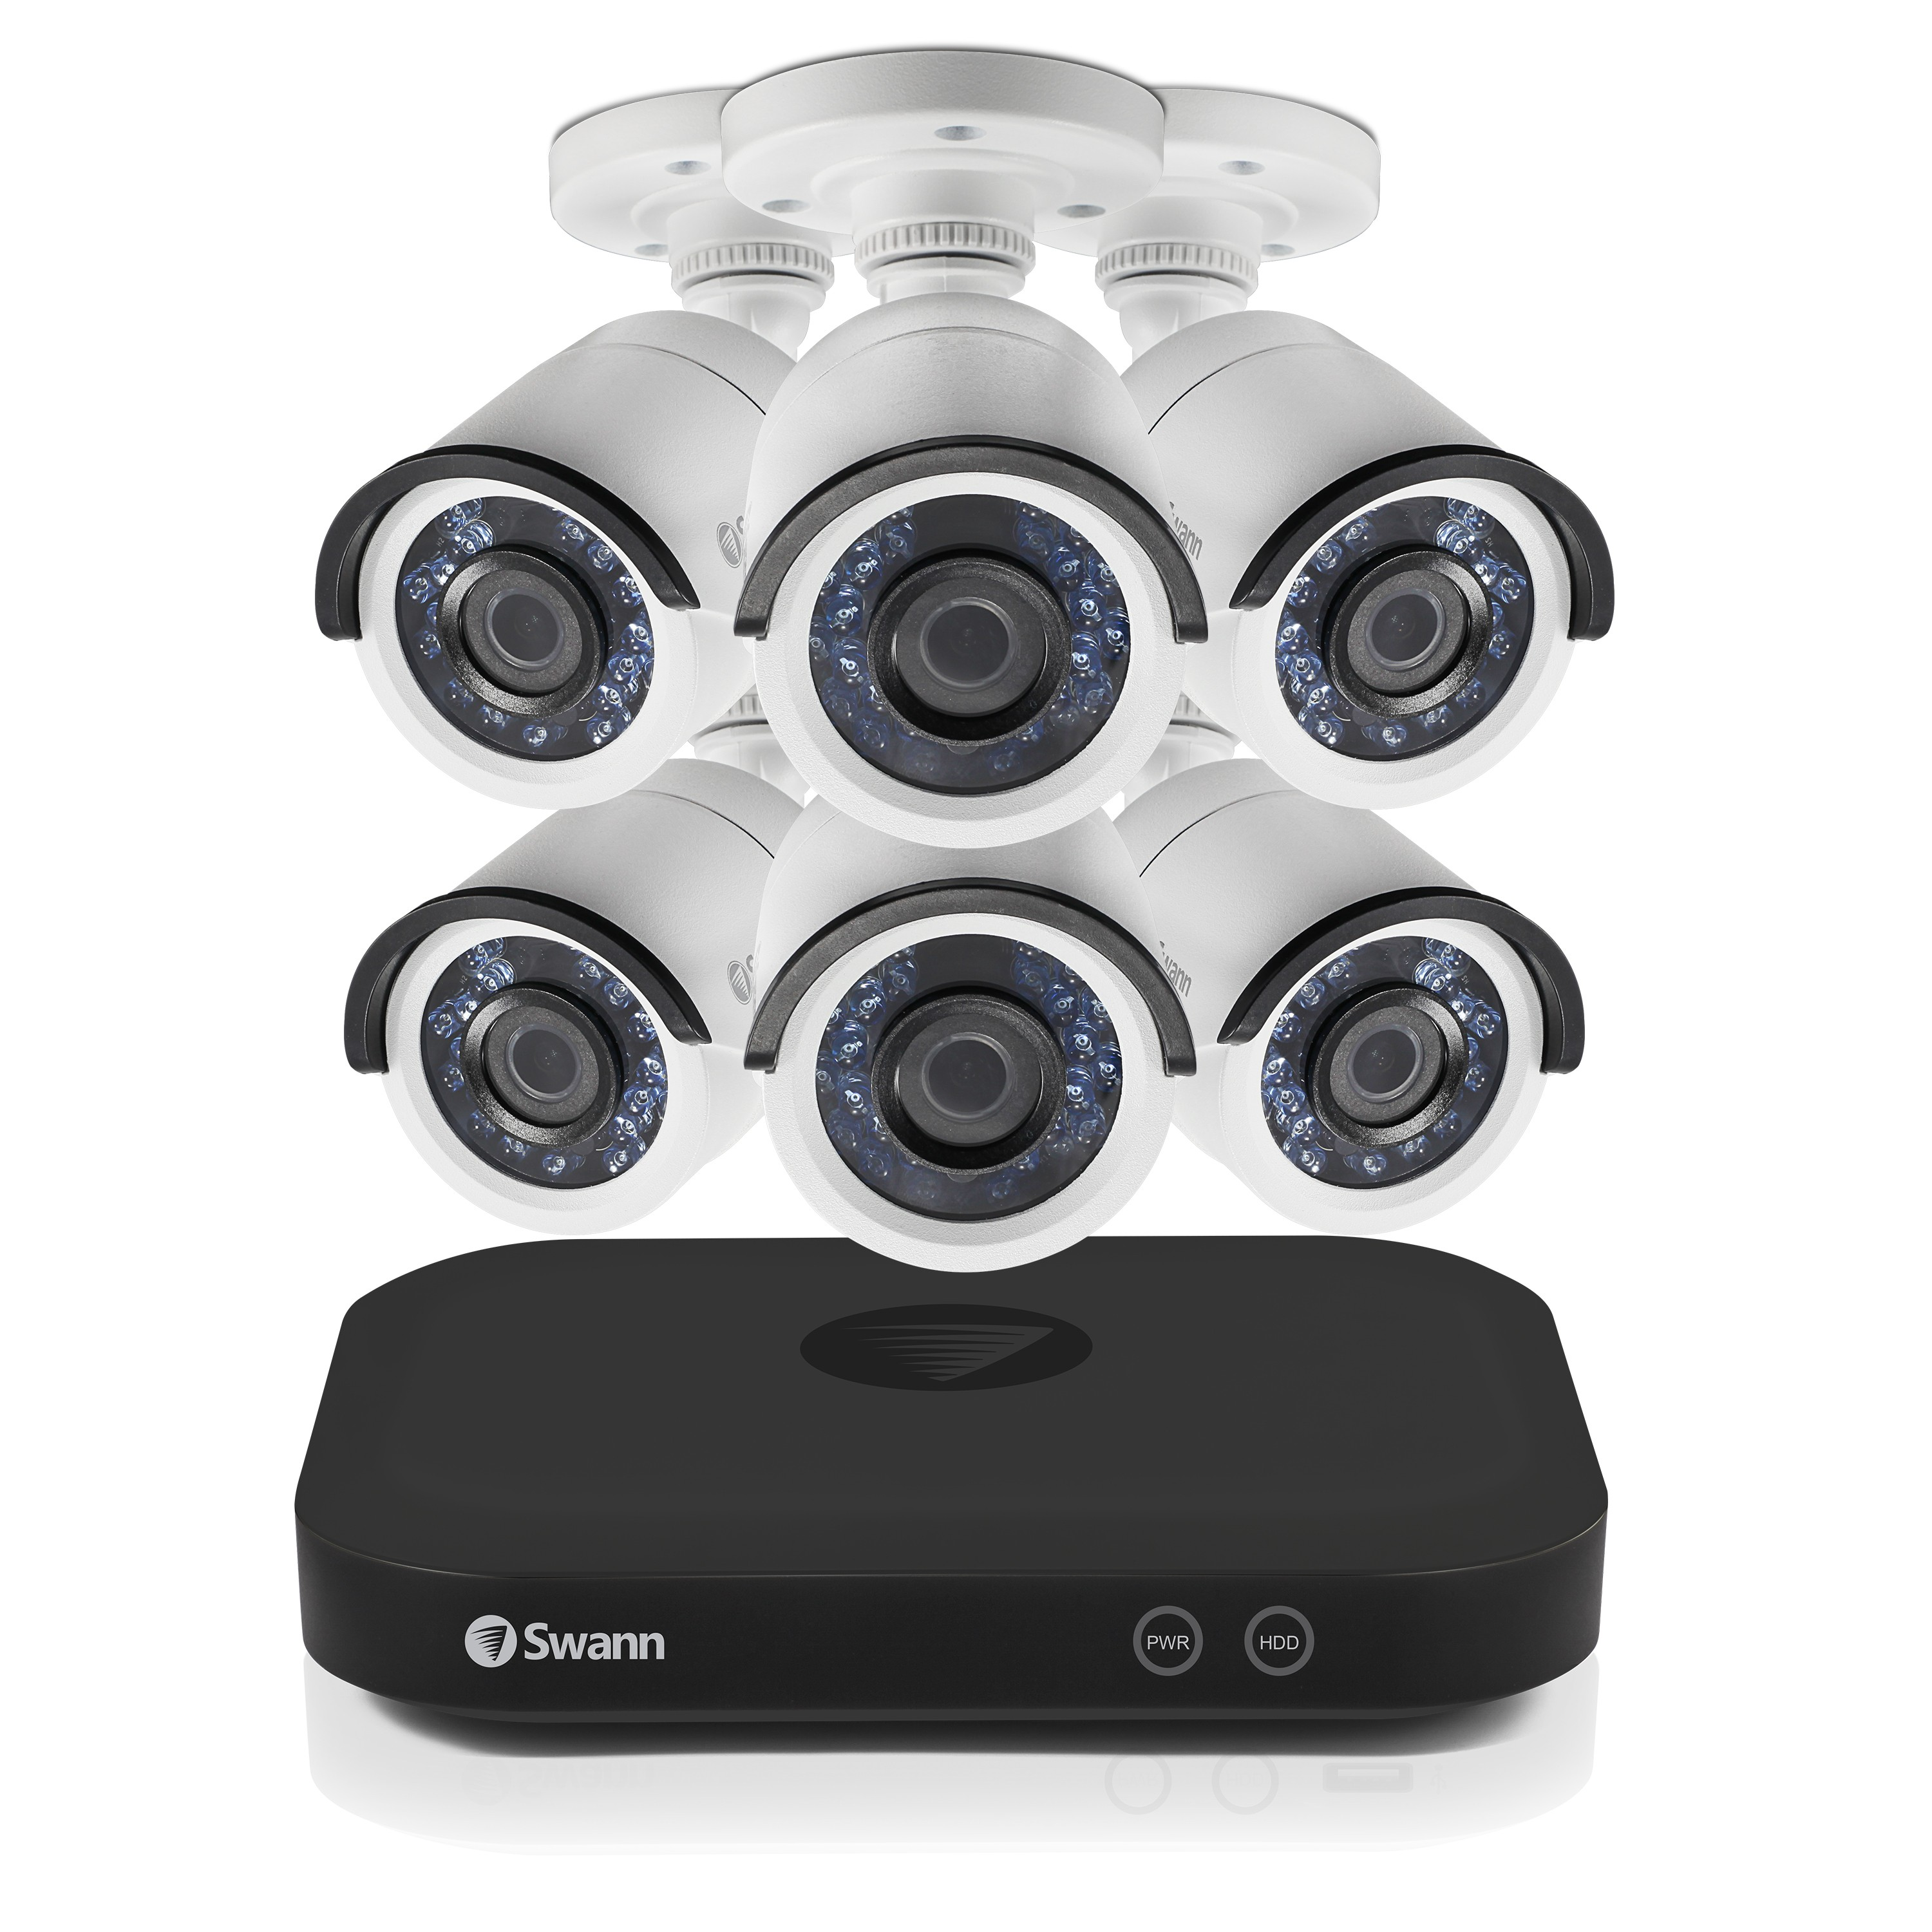 SODVK-849006 Swann 8 Channel Security System: 5MP Super HD DVR with 2TB HDD & 6 x 5MP Bullet Cameras (Plain Box Packaging) -